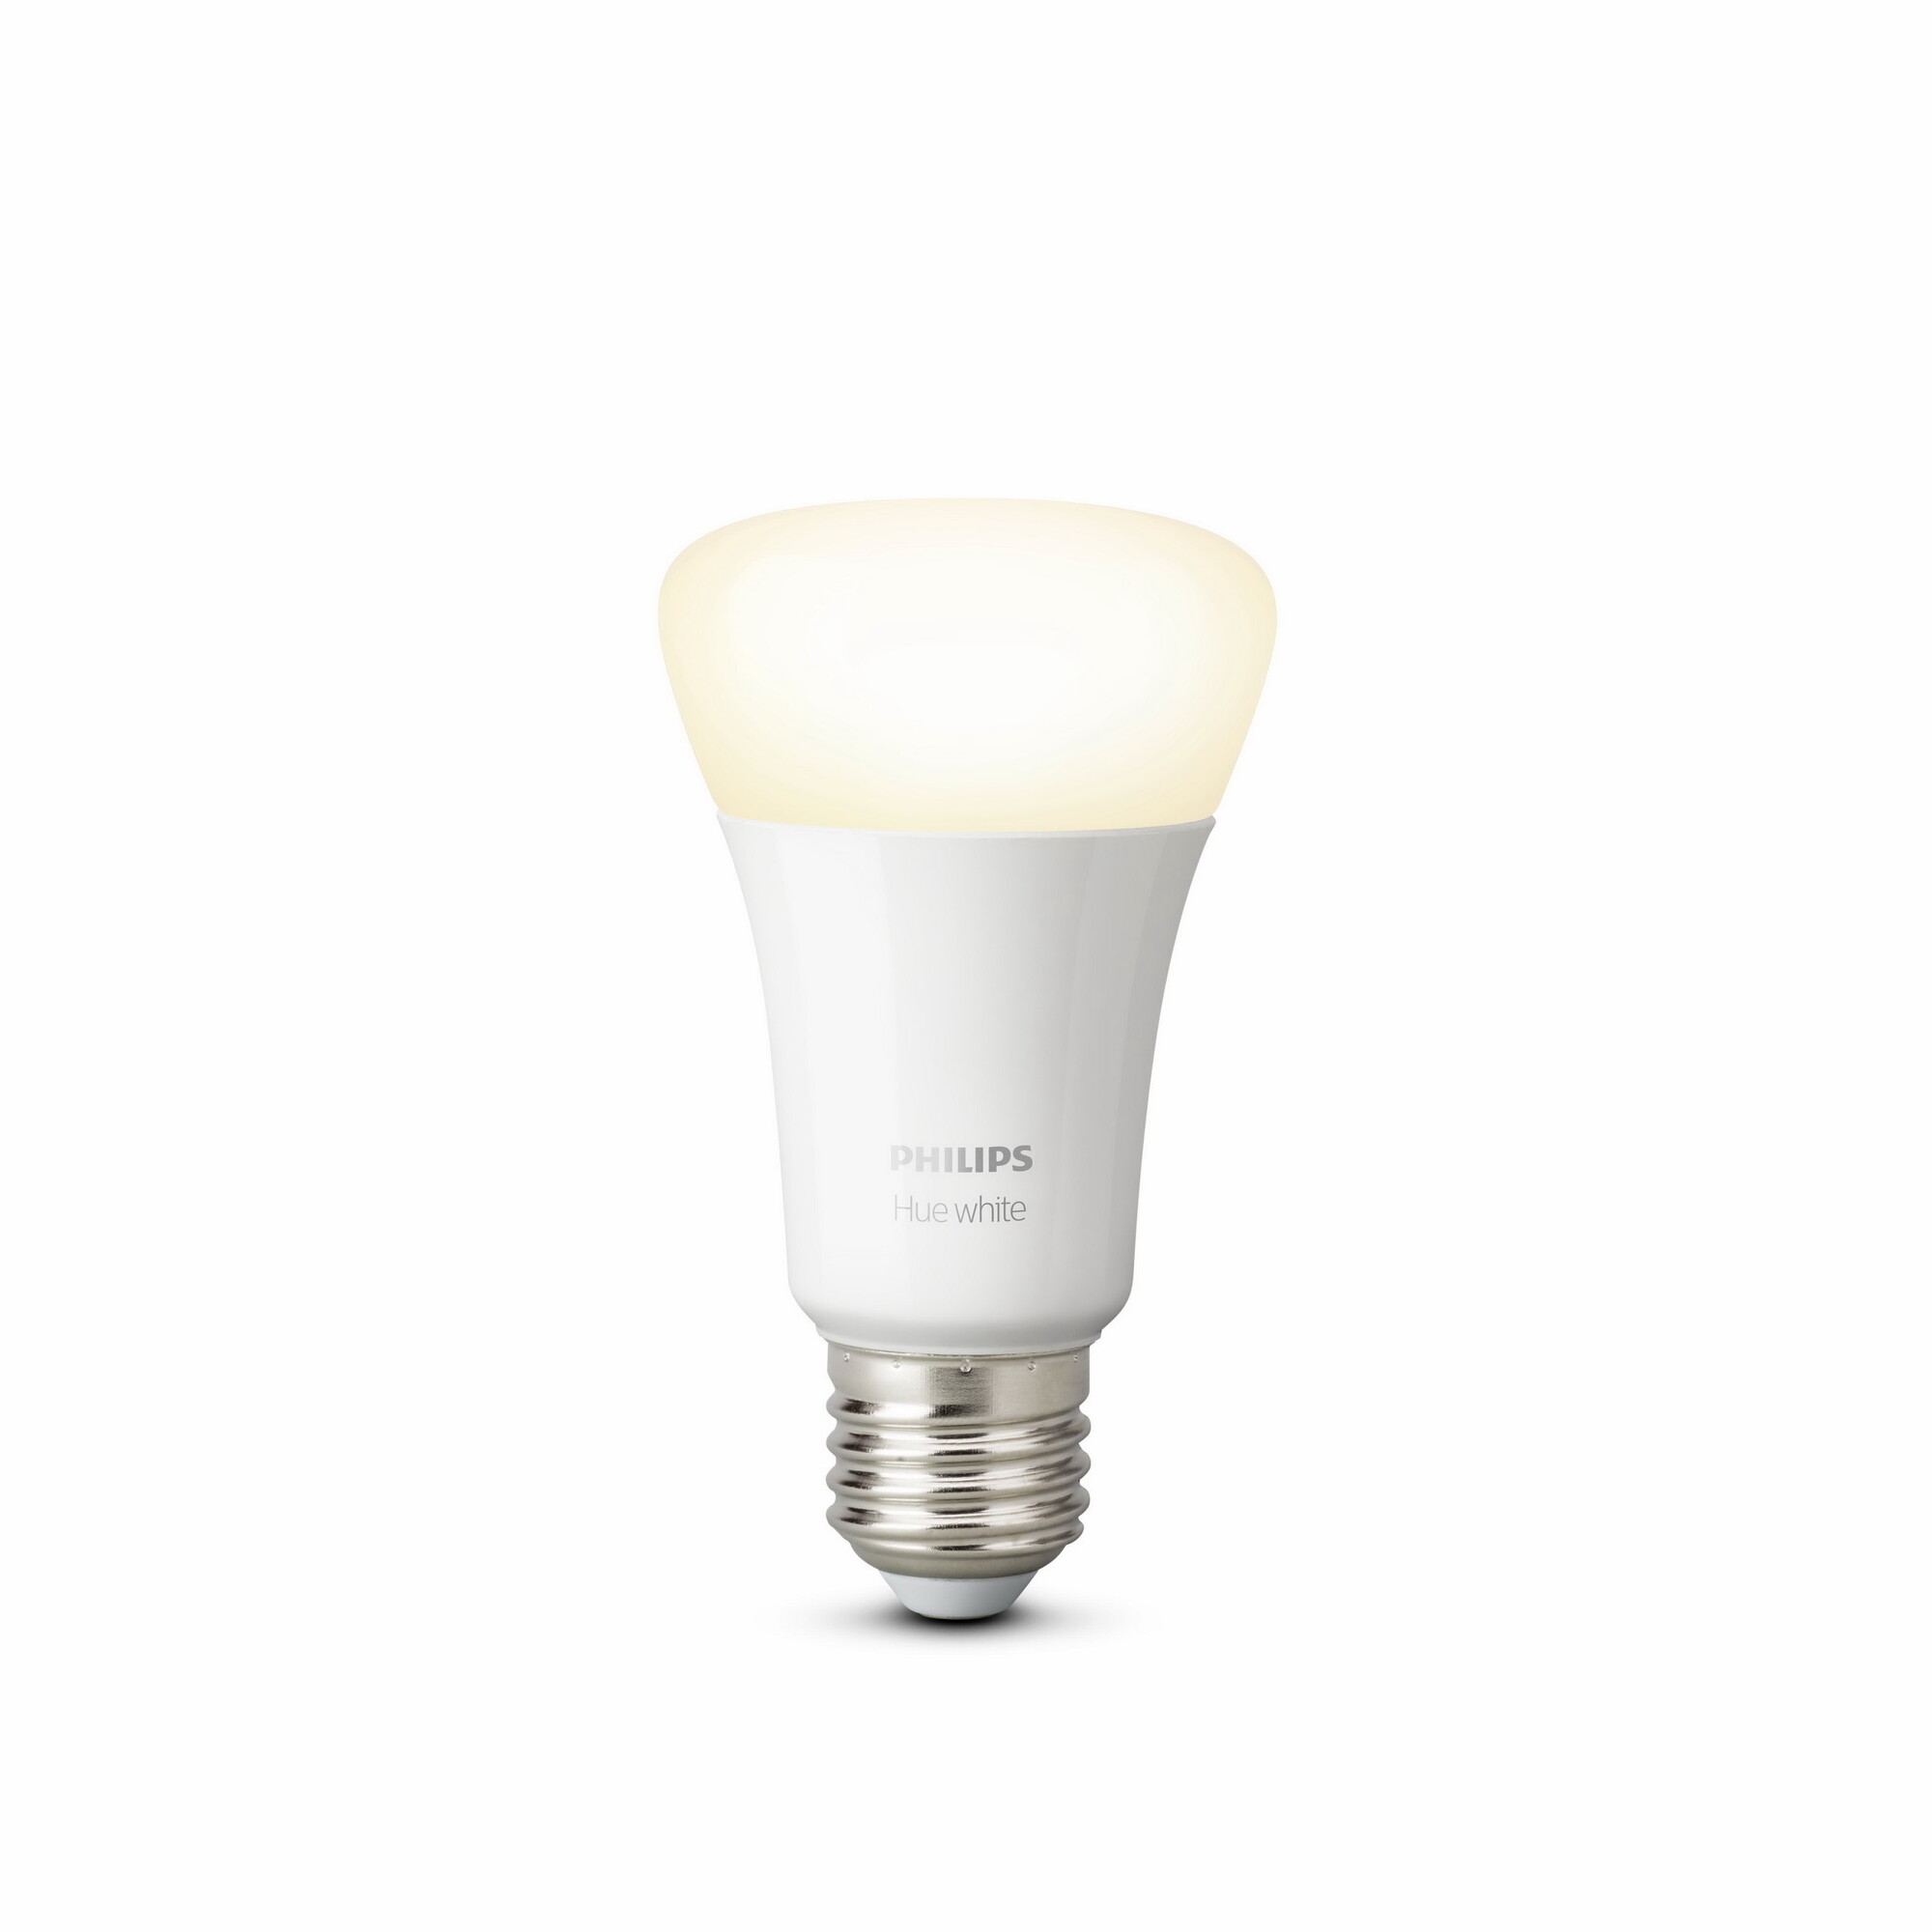 Philips HUE White E27 9W 806lm 2700K